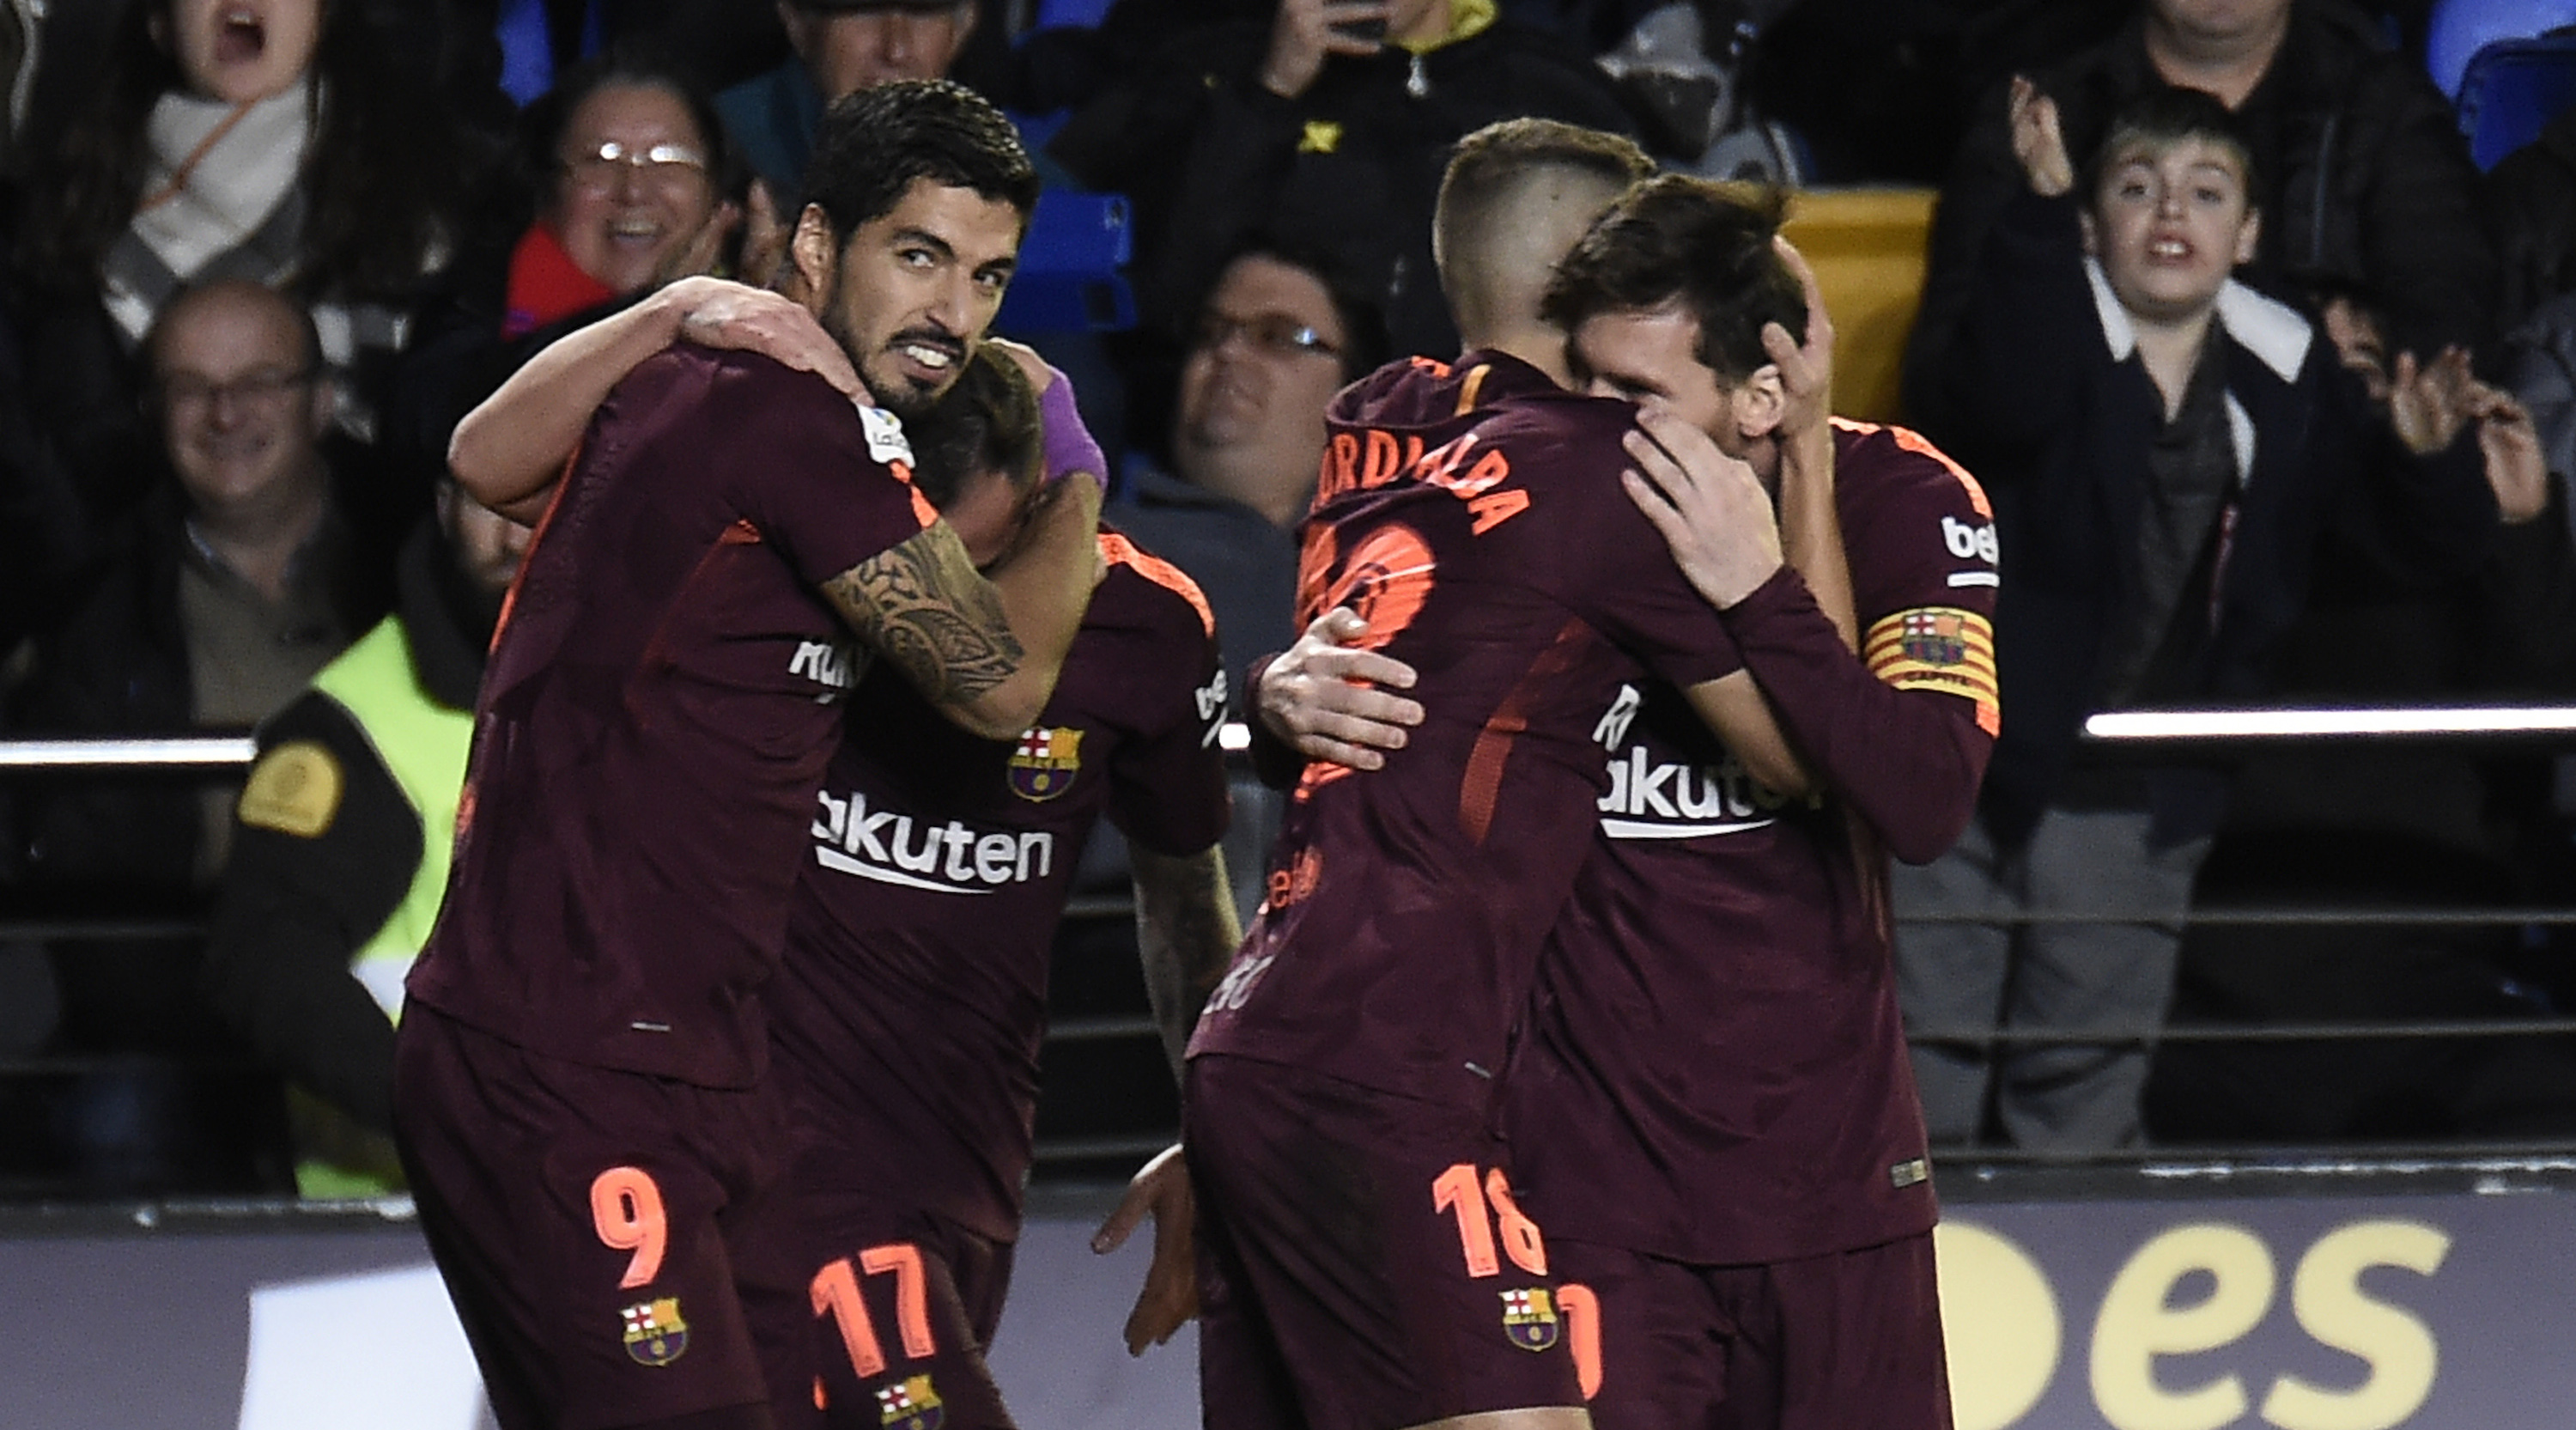 Barcelona's Uruguayan forward Luis Suarez (L) celebrates with teammates after scoring during the Spanish league football match between Villarreal CF and FC Barcelona at La Ceramica stadium in Vila-real on December 10, 2017. / AFP PHOTO / JOSE JORDAN (Photo credit should read JOSE JORDAN/AFP/Getty Images)